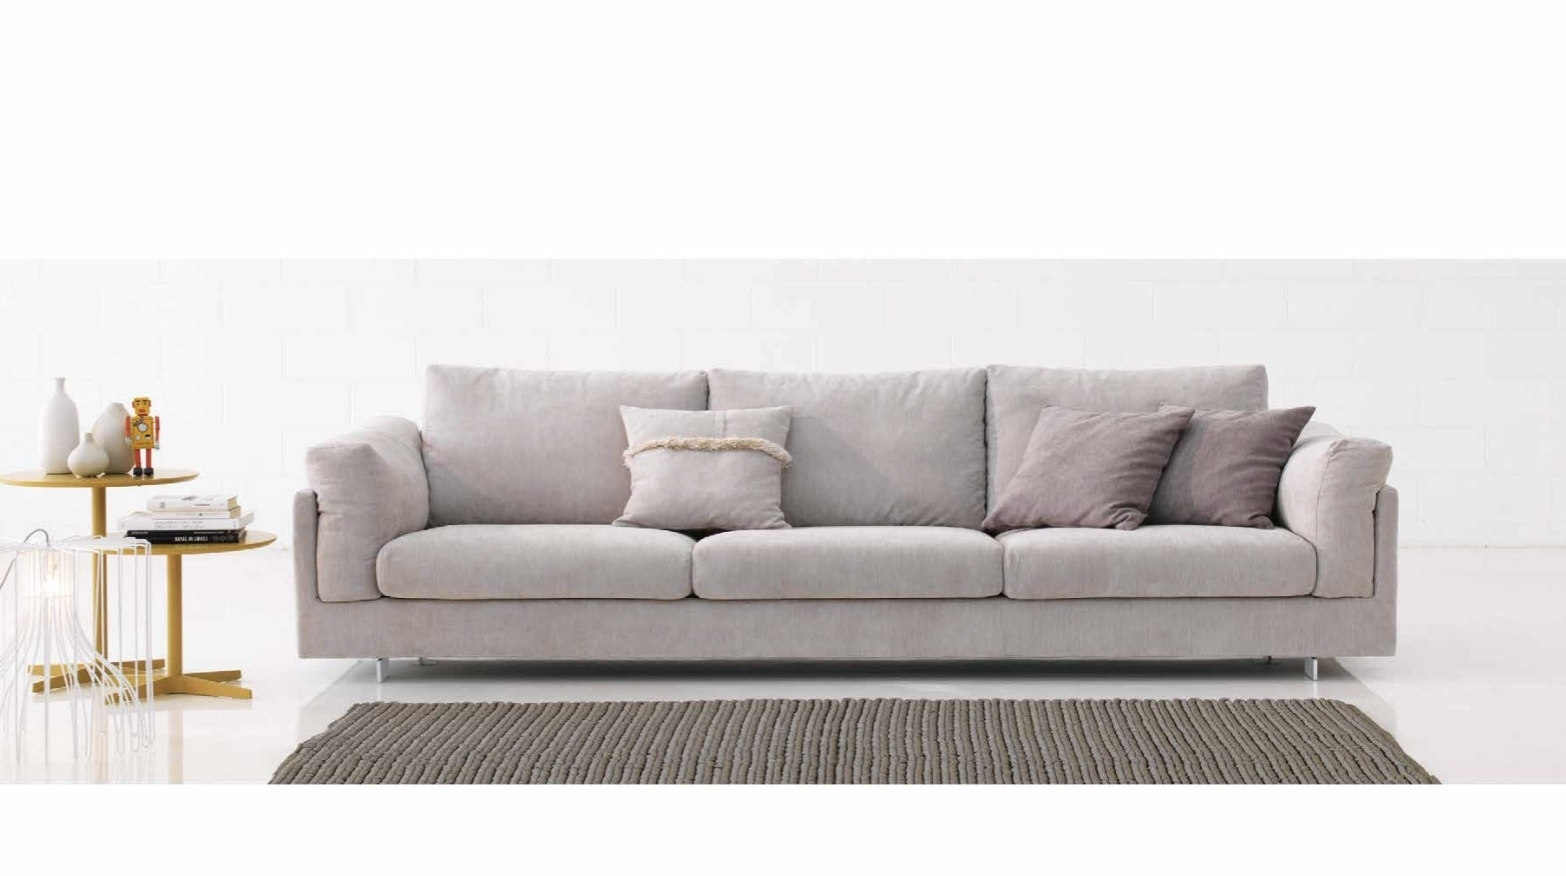 Comfortable Sofas And Chairs In Current Italian Sofas At Momentoitalia – Modern Sofas,designer Sofas (View 12 of 15)